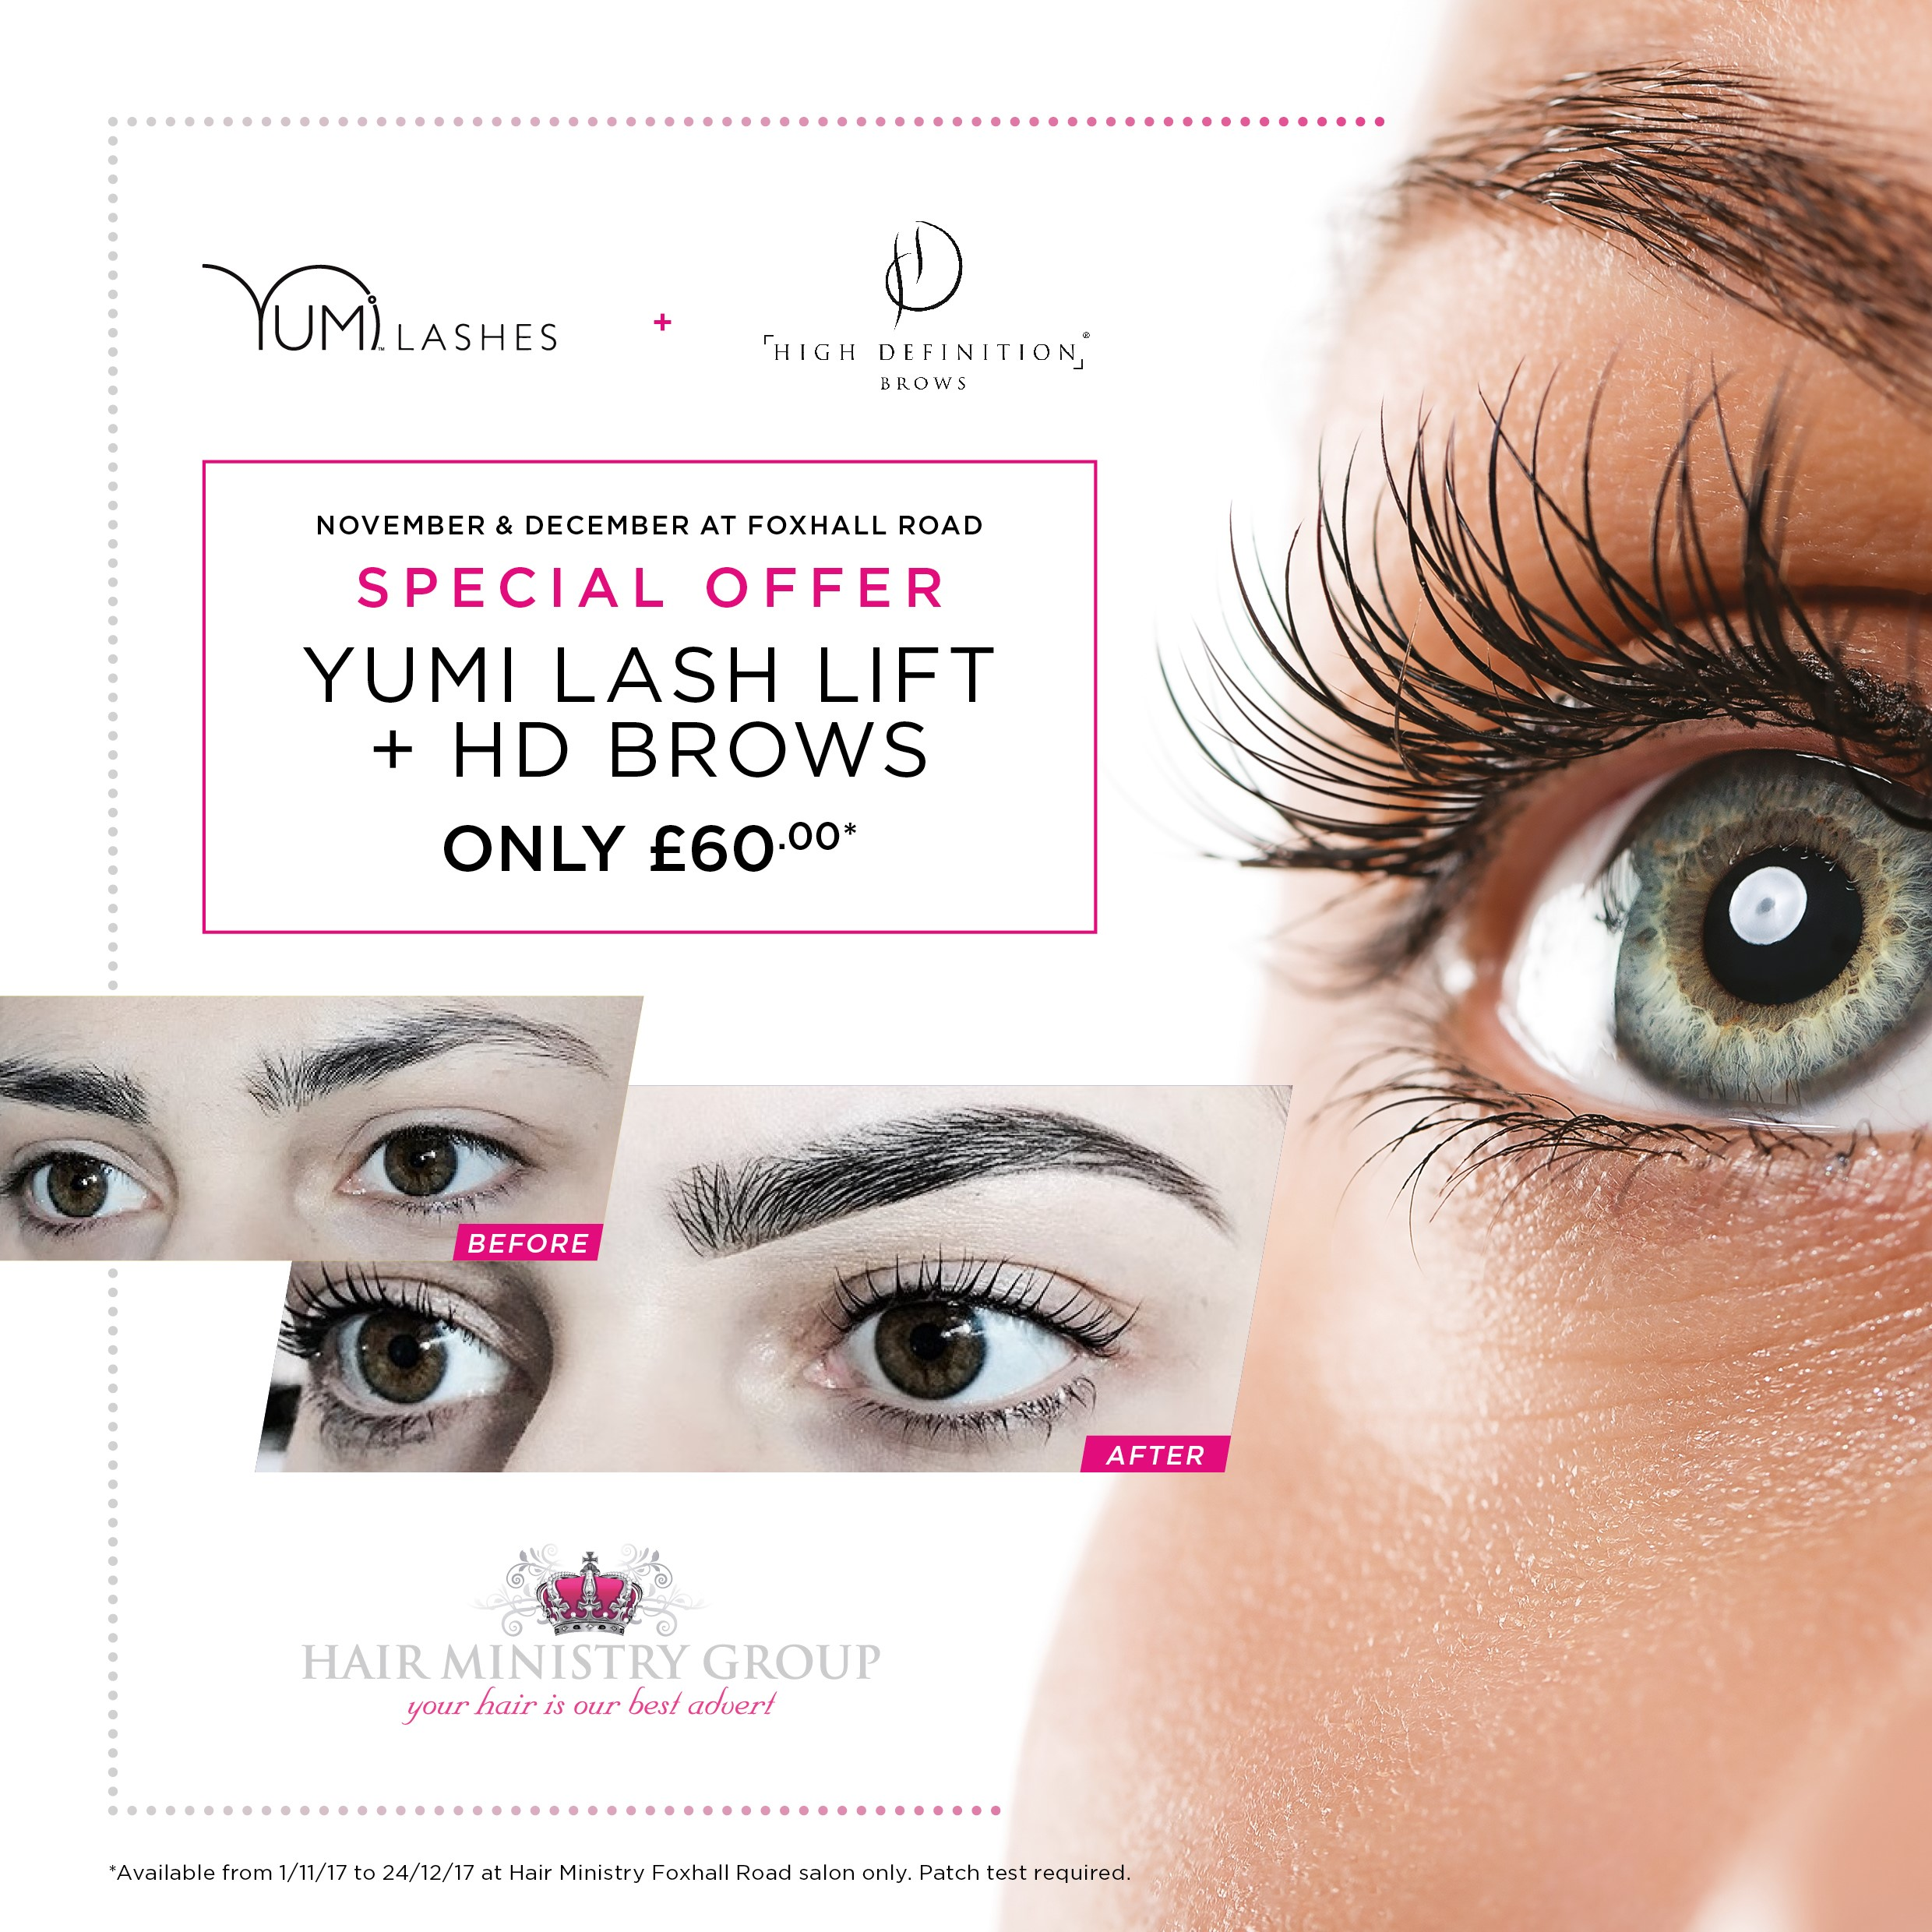 HD Brows & Yumi Lash Lift Special